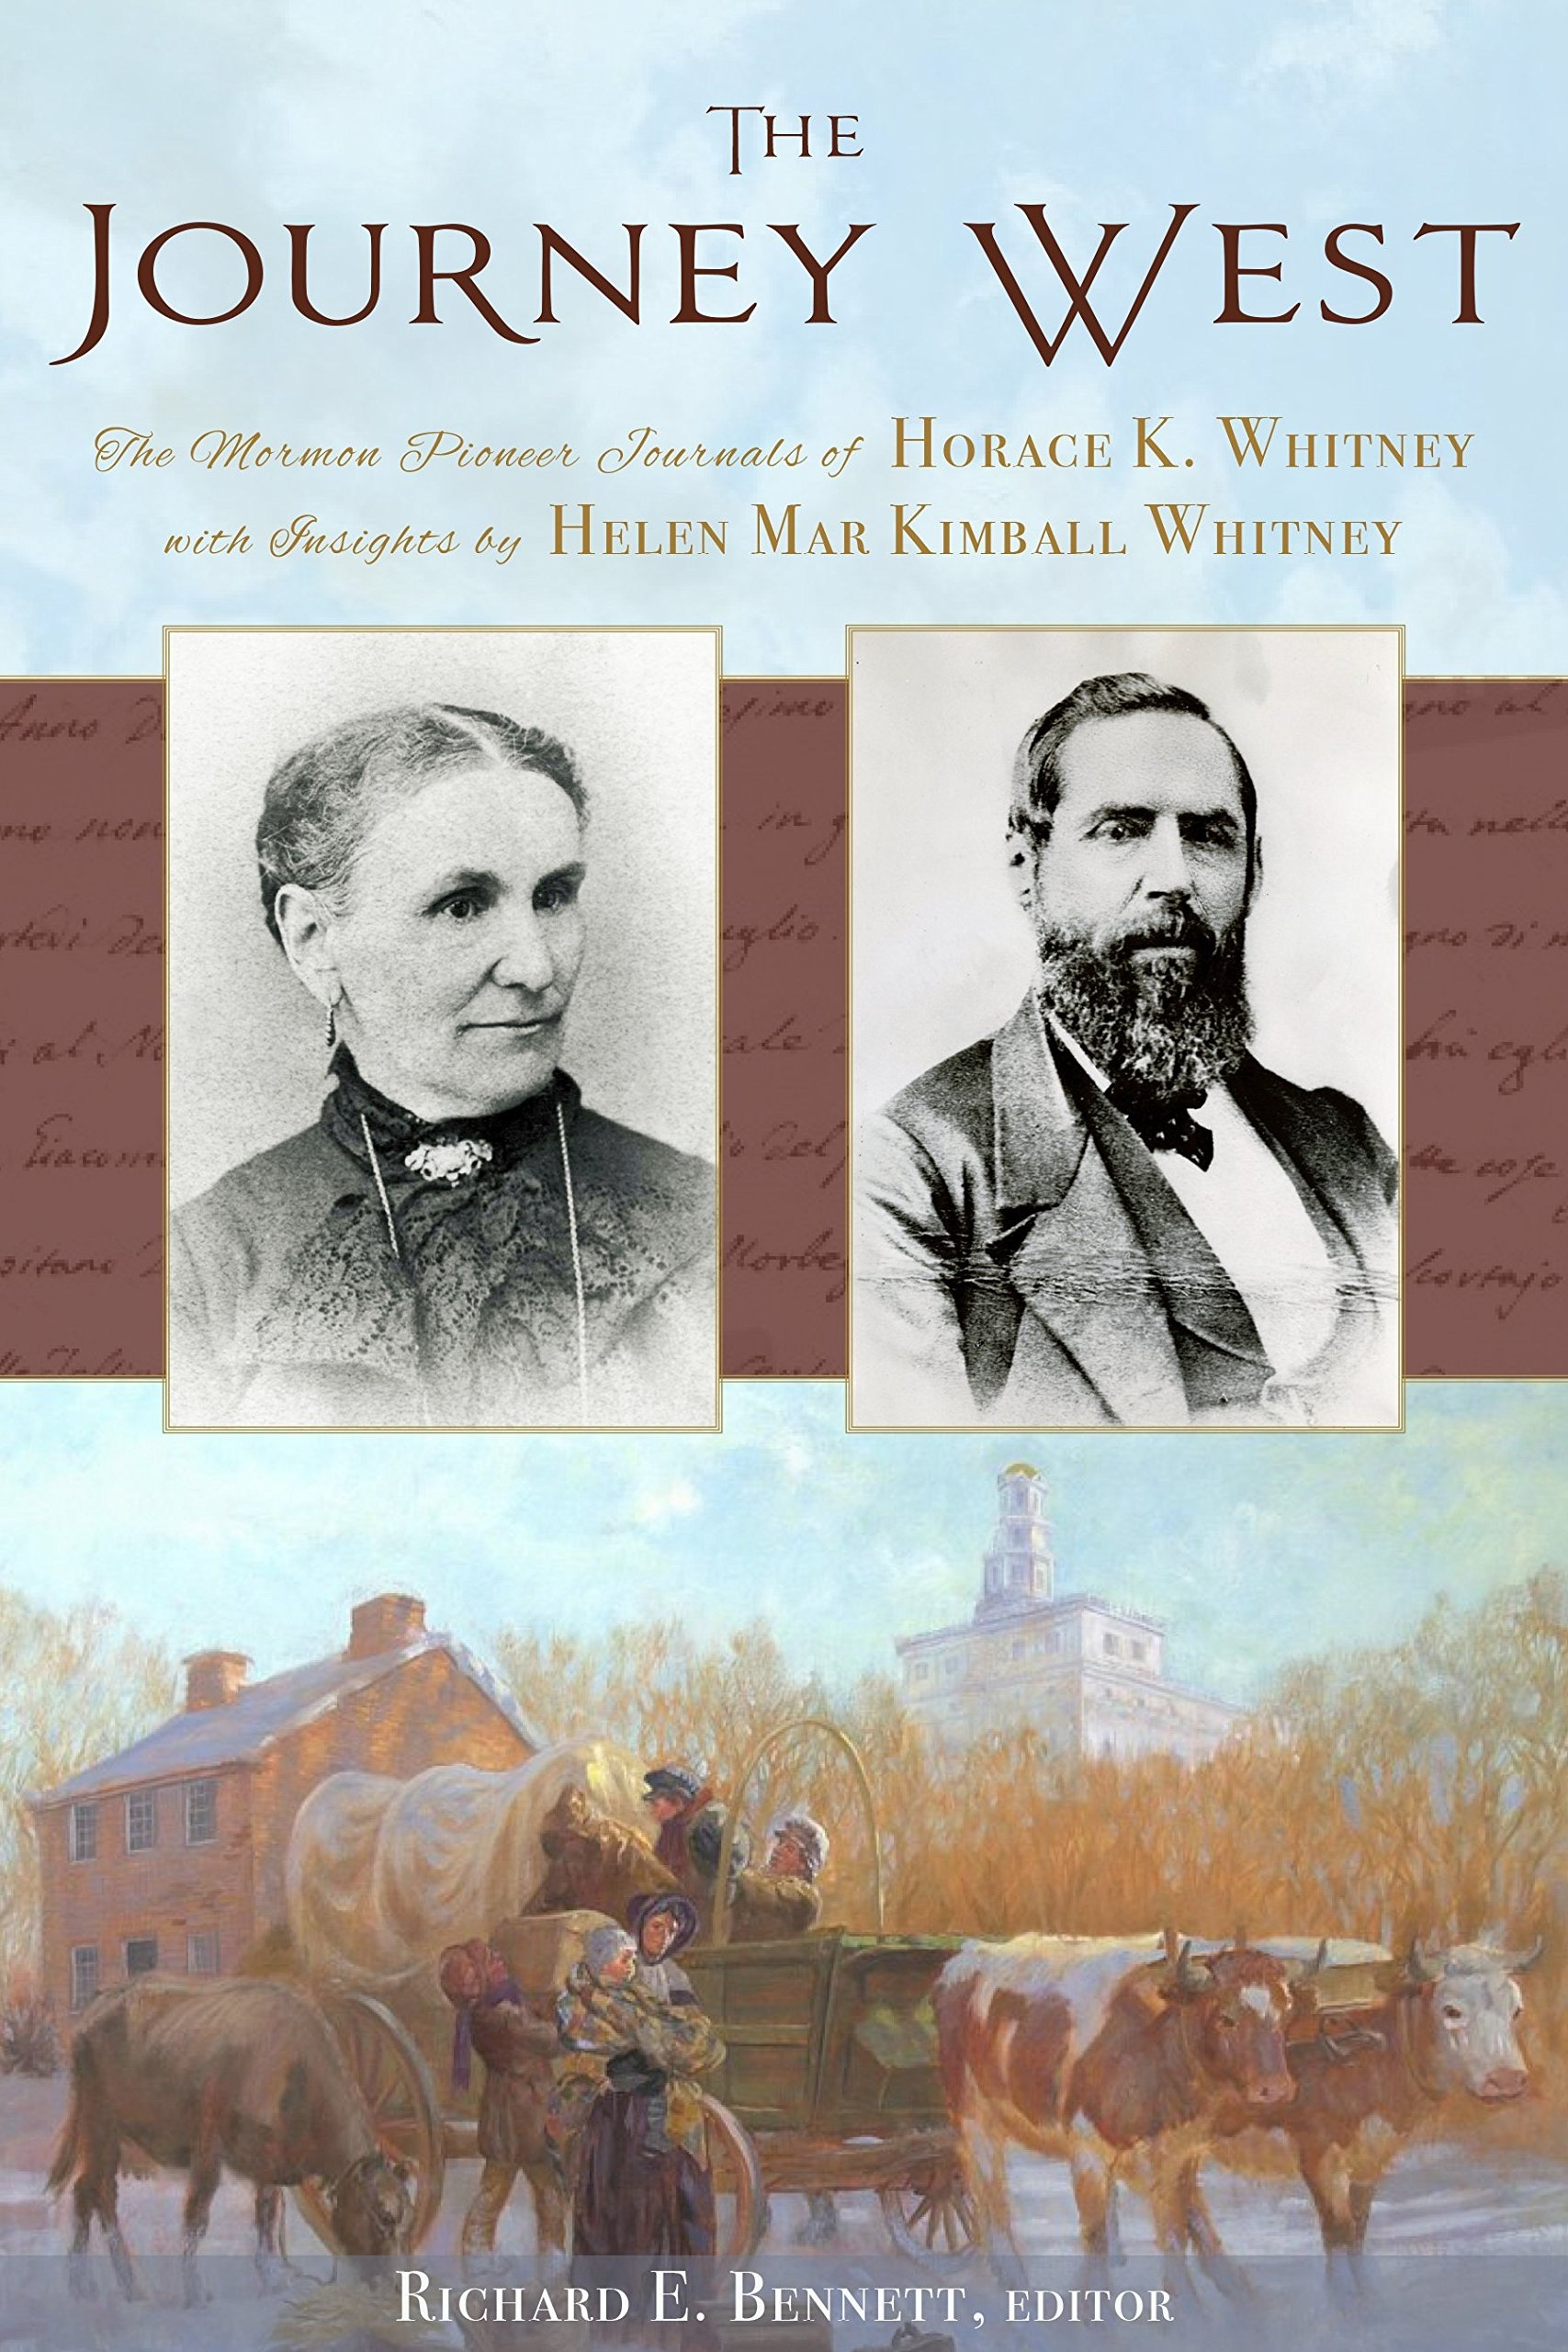 Image for The Journey West;   The Pioneer Journals of Horace K. Whitney with Insights from Helen Mar Kimball Whitney